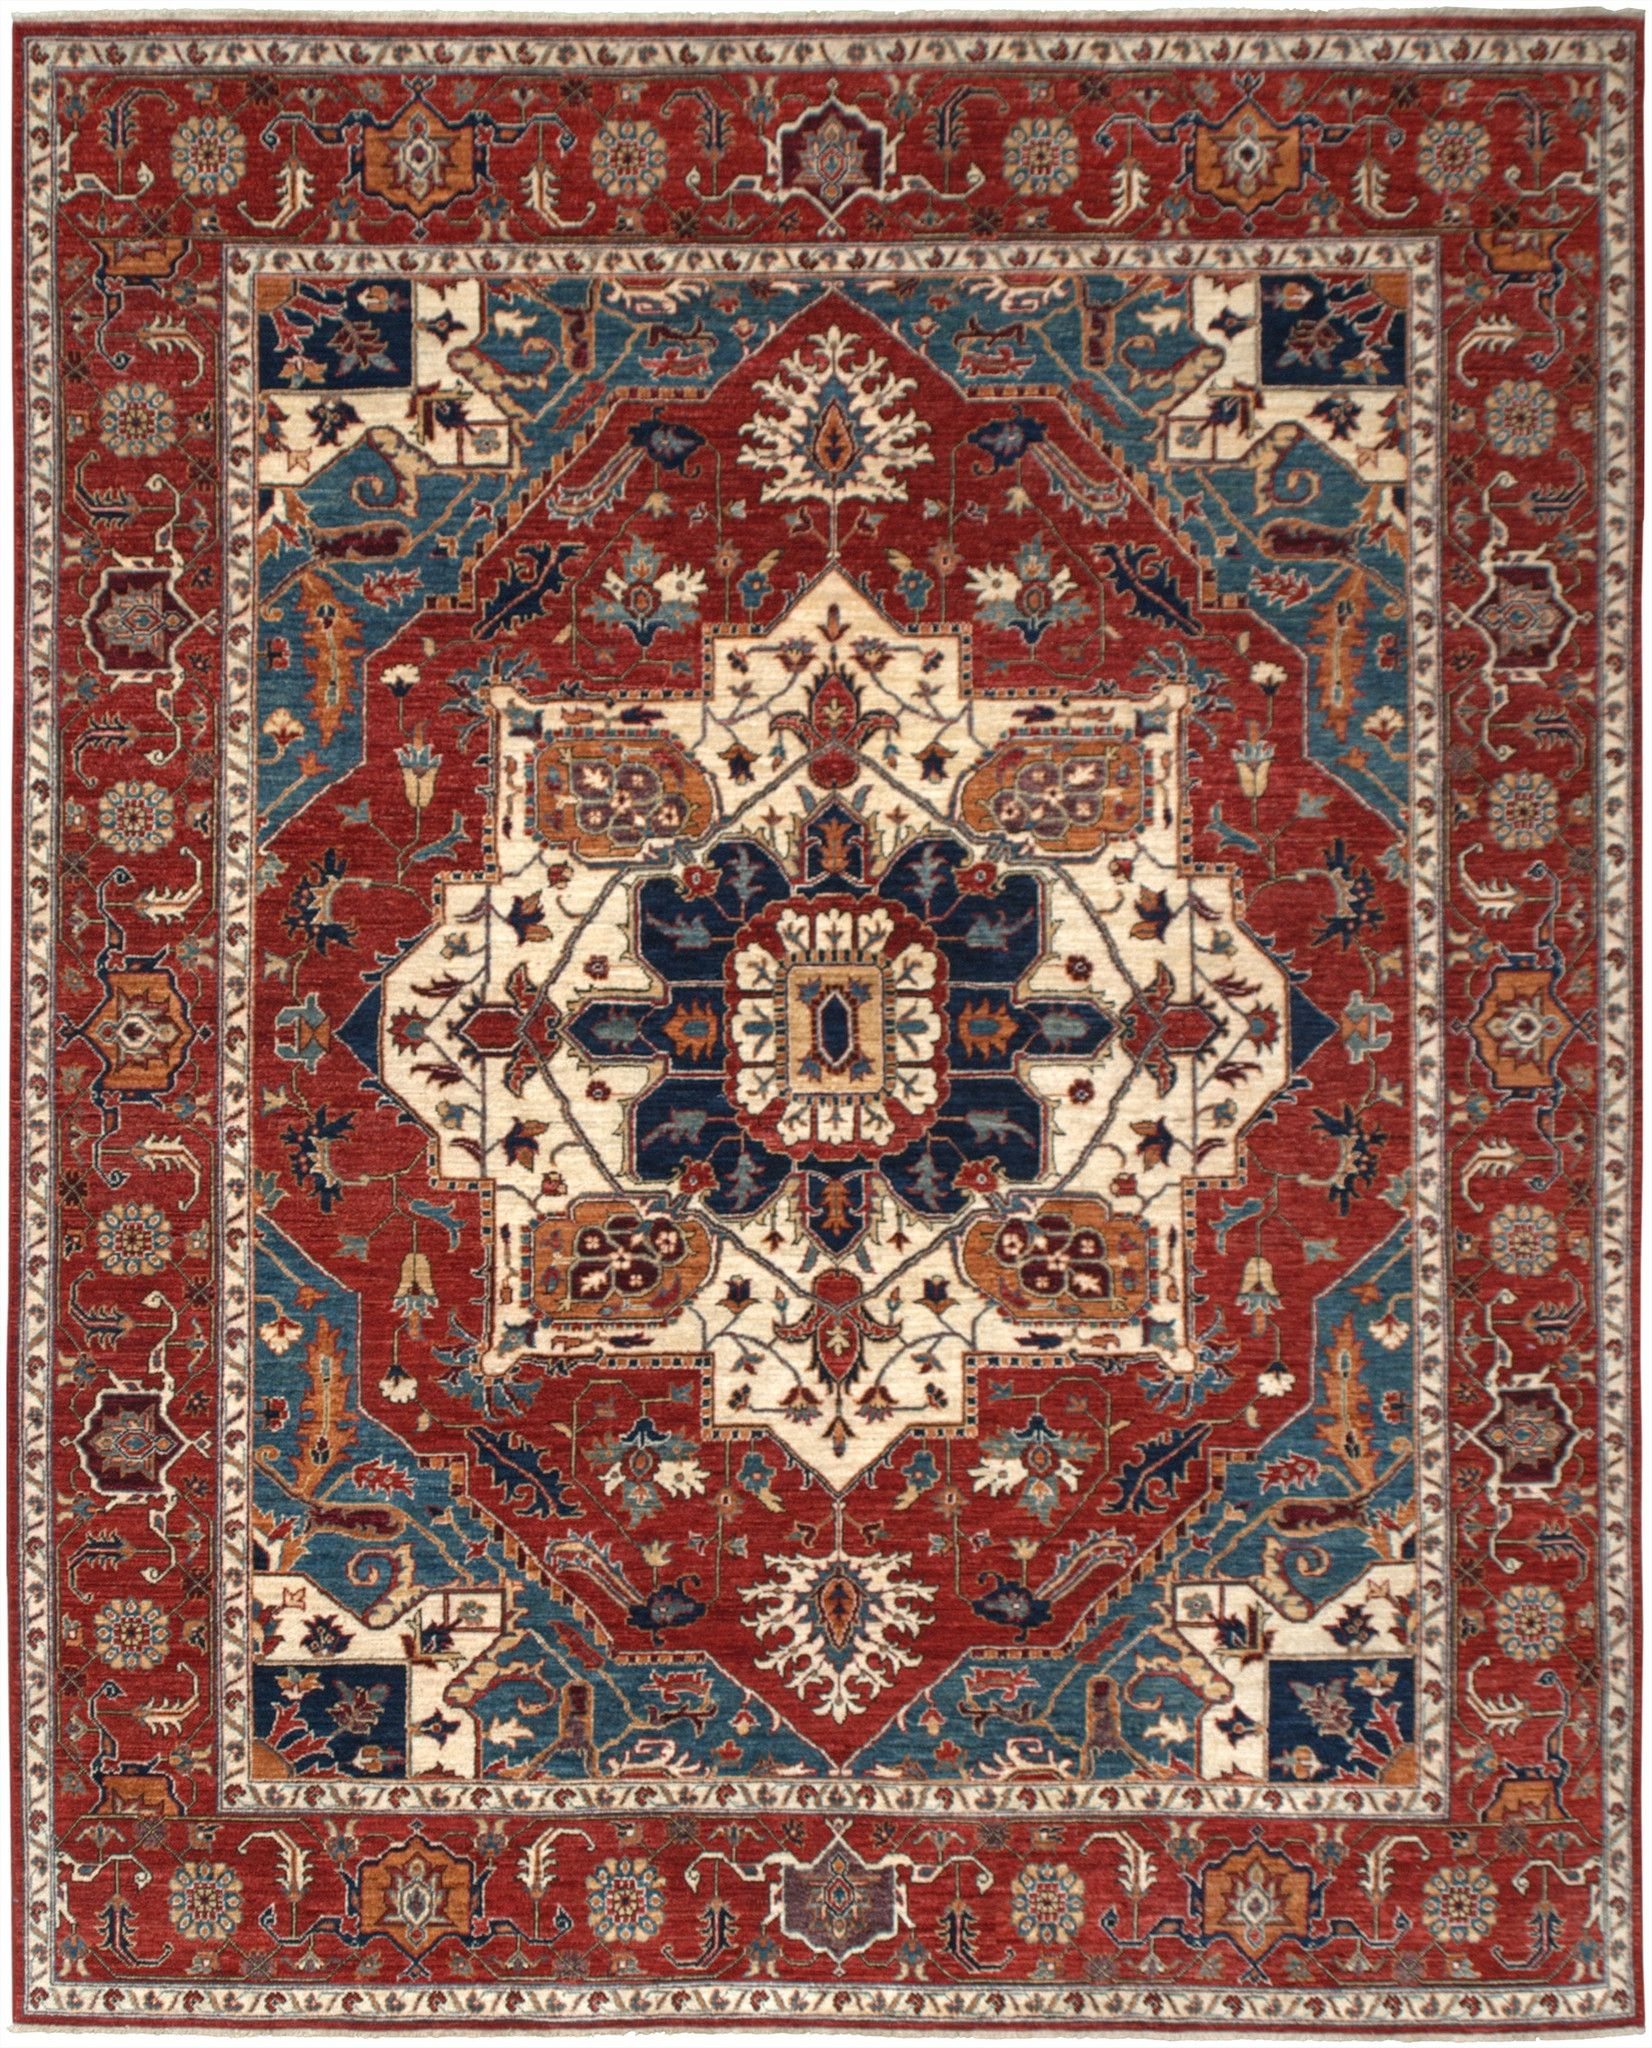 New Stan Hand Woven Antique Reproduction Of A 19th Century Persian Serapi Carpet 8 1 X 10